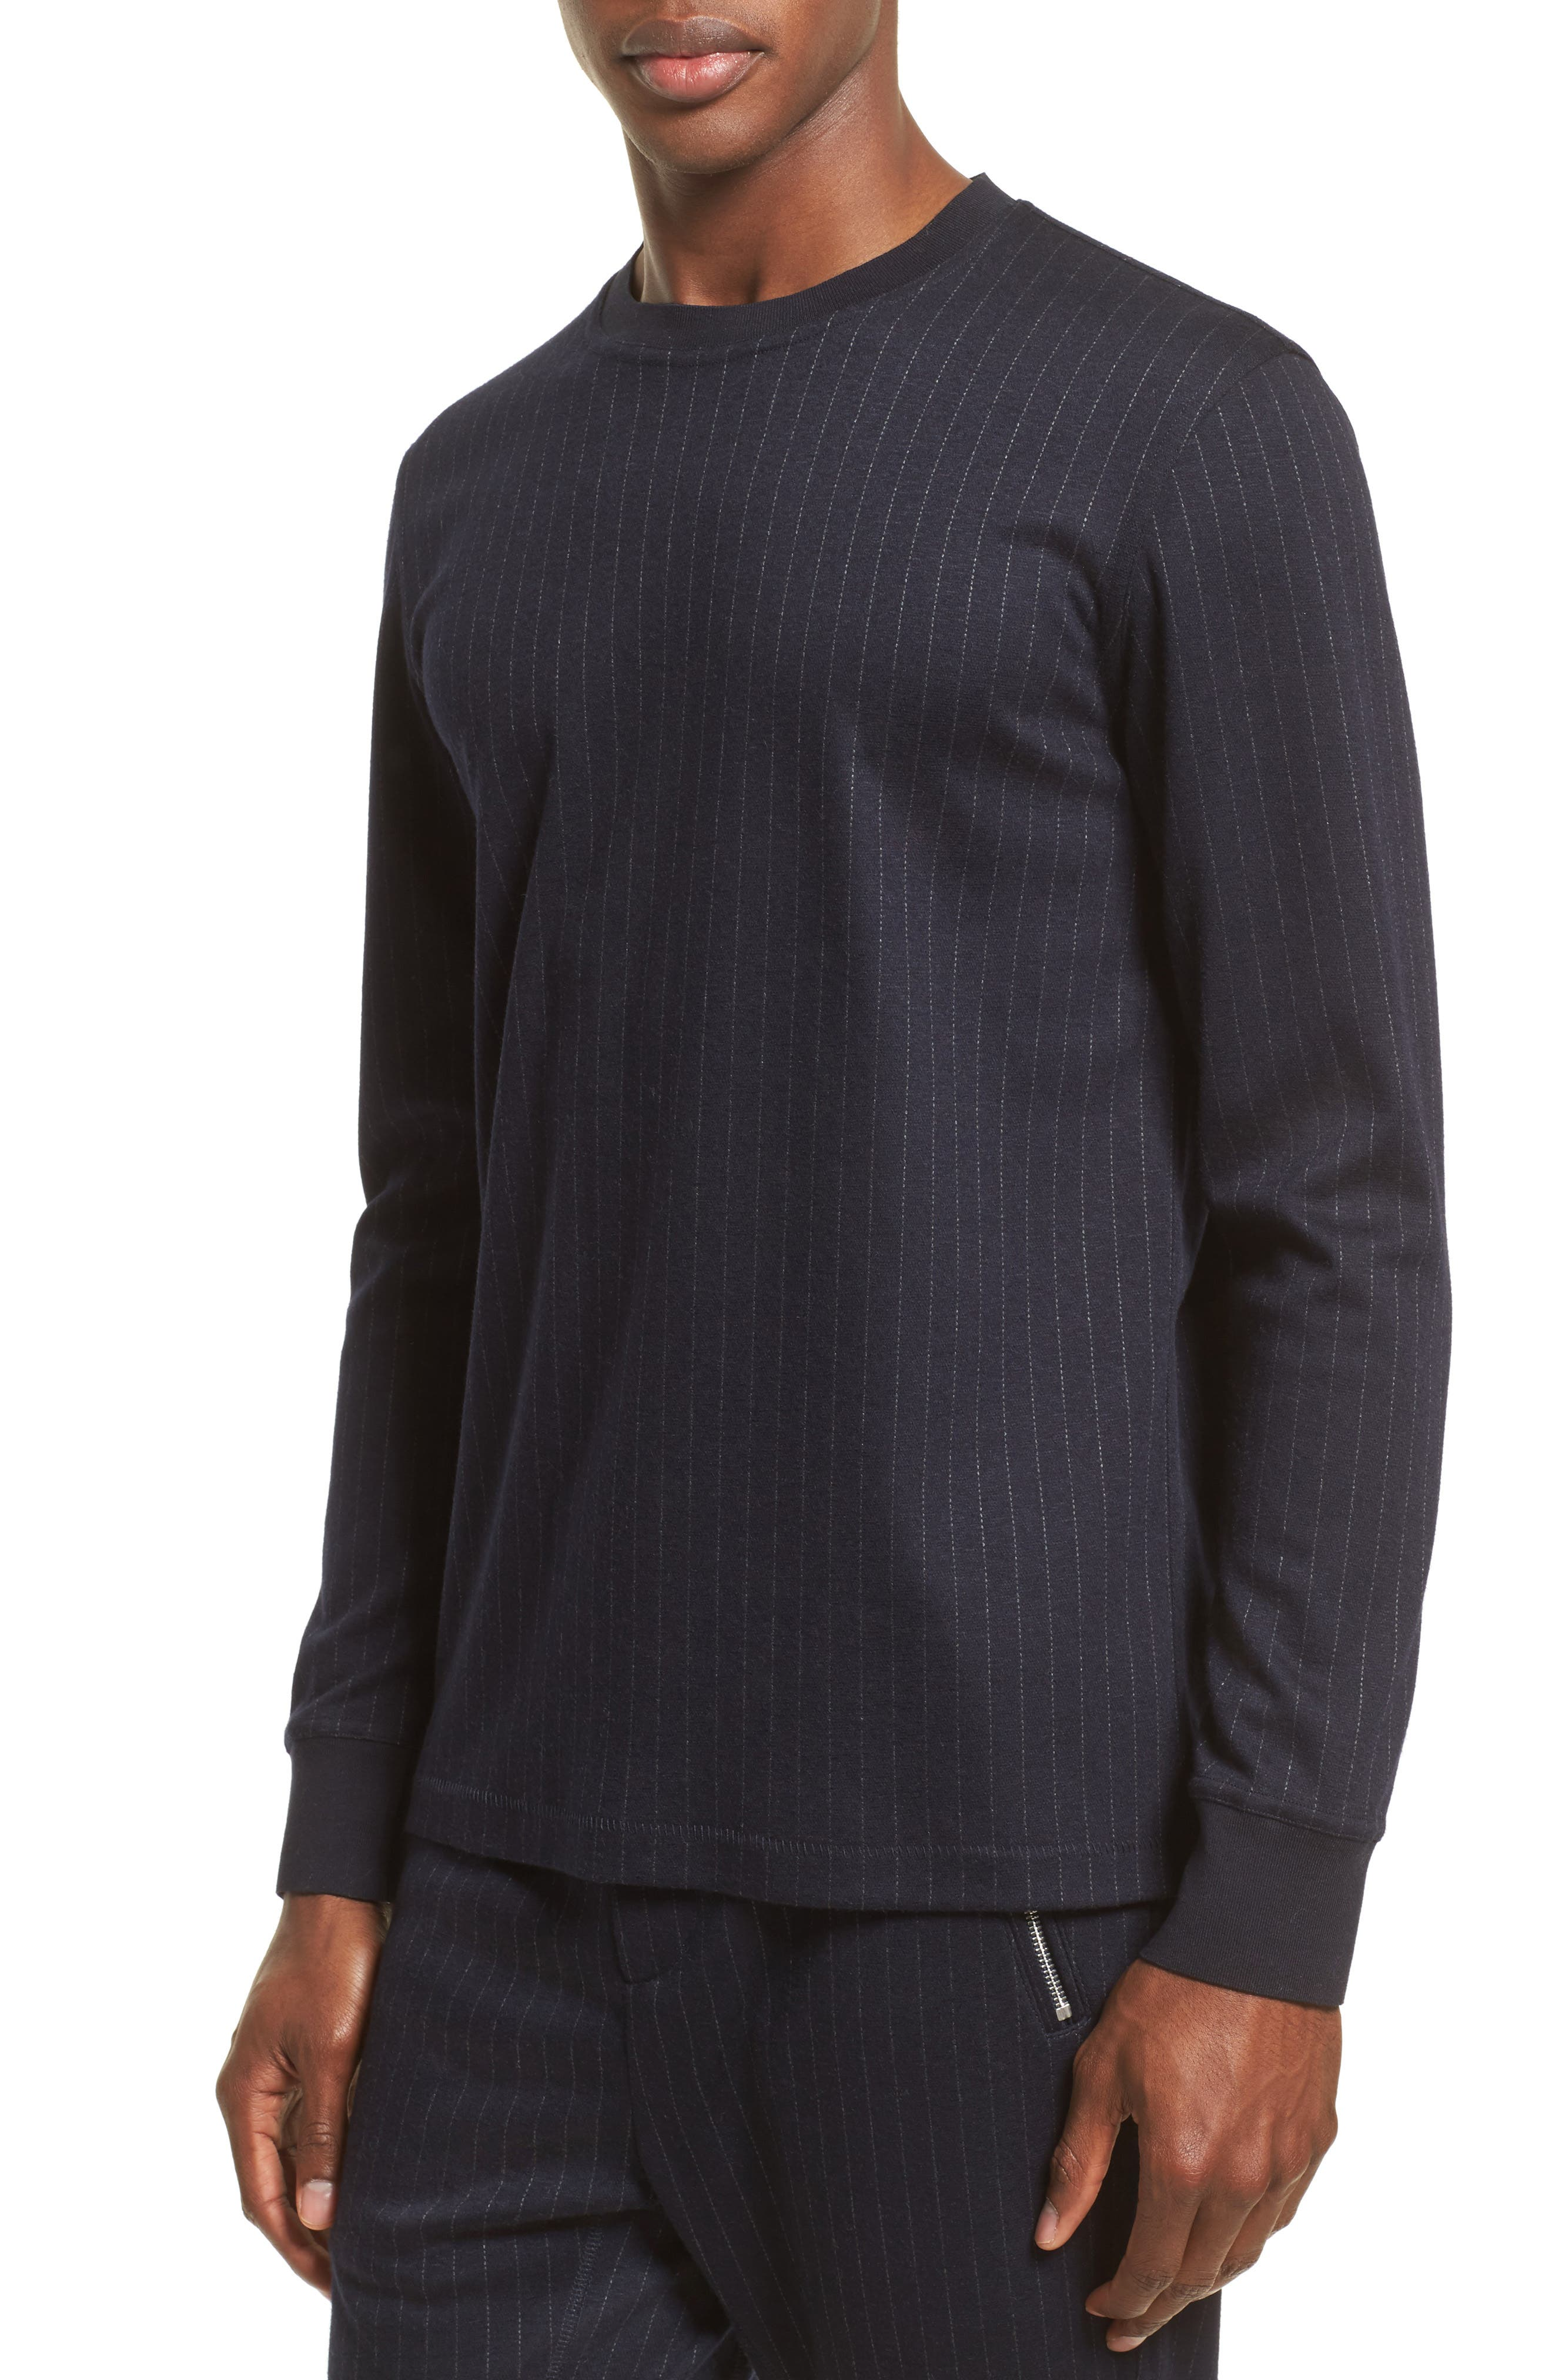 Alternate Image 1 Selected - 3.1 Phillip Lim Stripe Long Sleeve T-Shirt